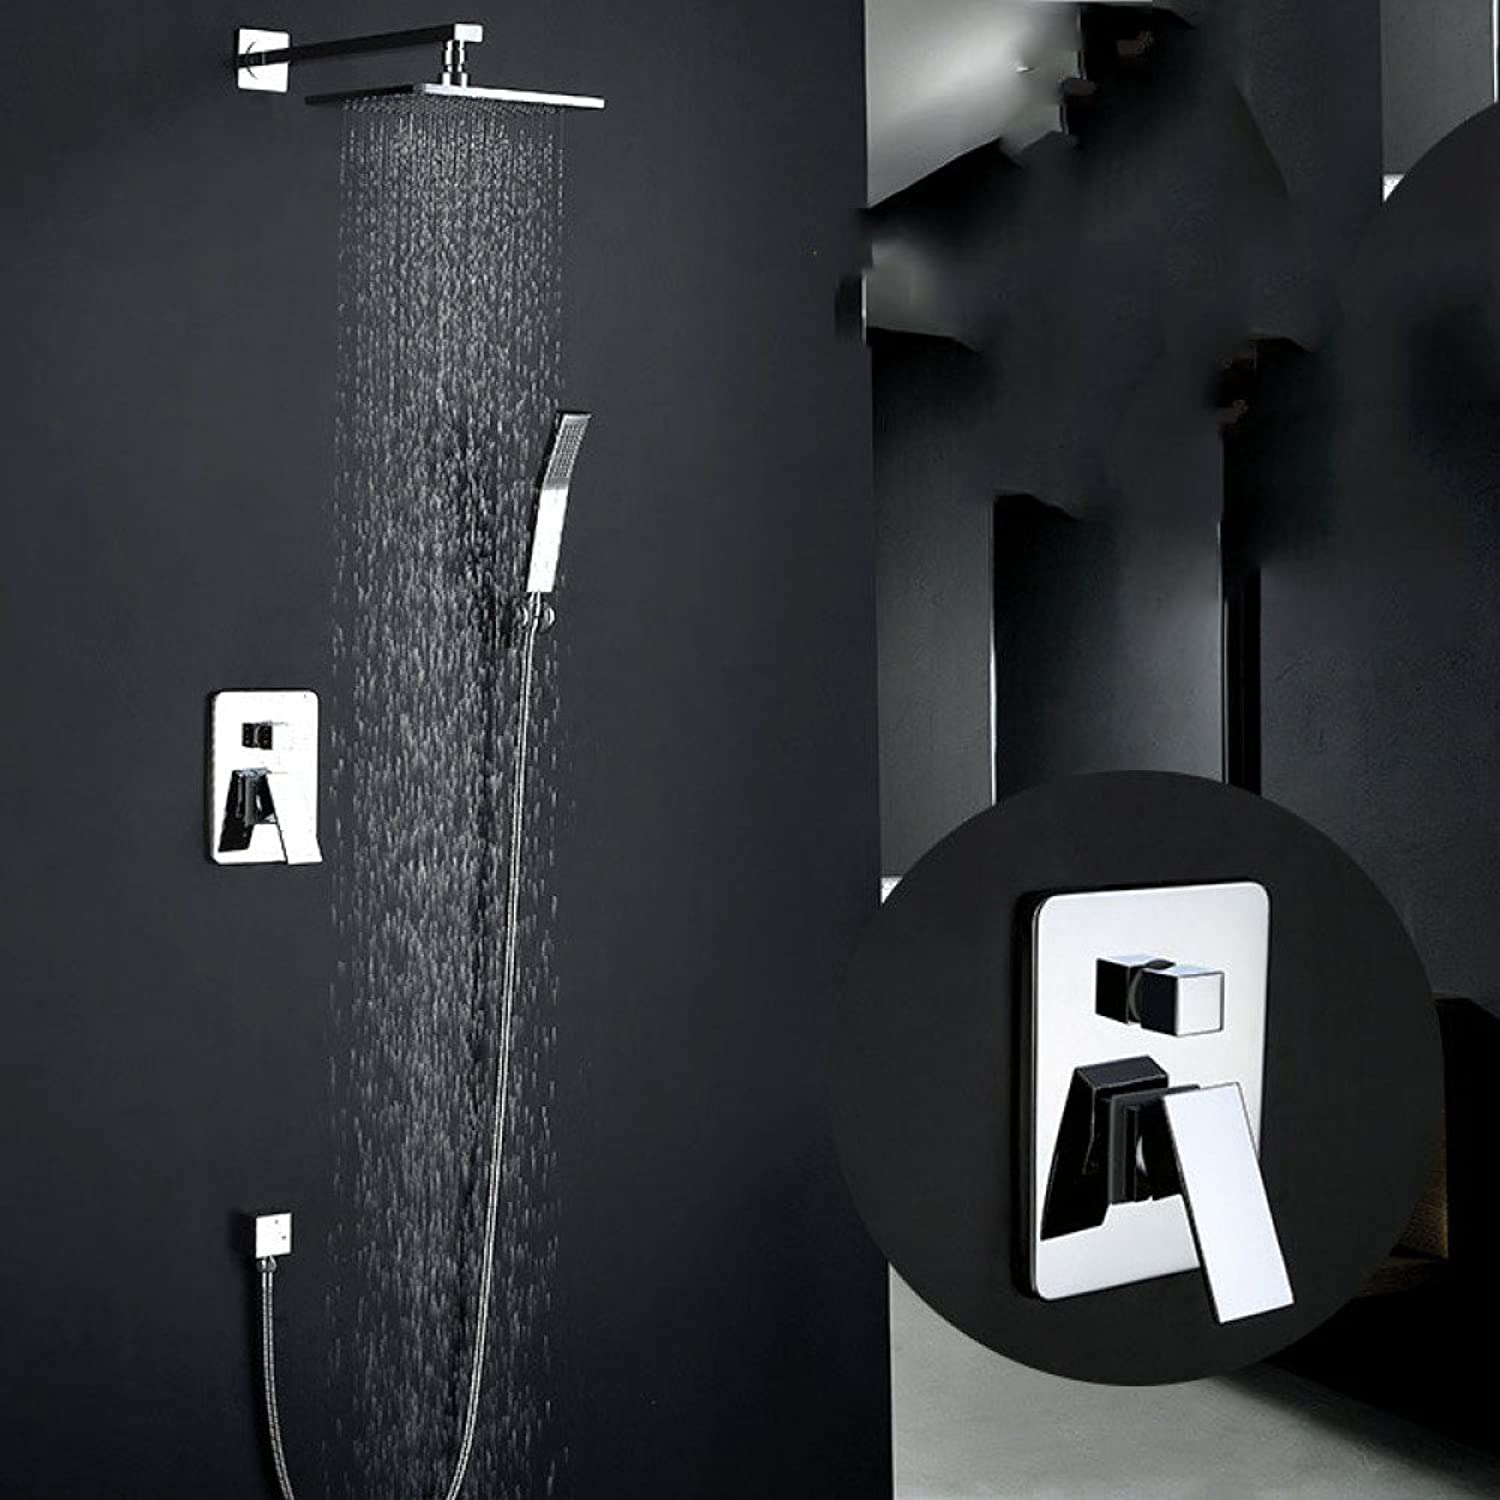 ZHWY take a shower Shower set Bathroom Concealed black shower head all bronze Concealed In-wall take a shower